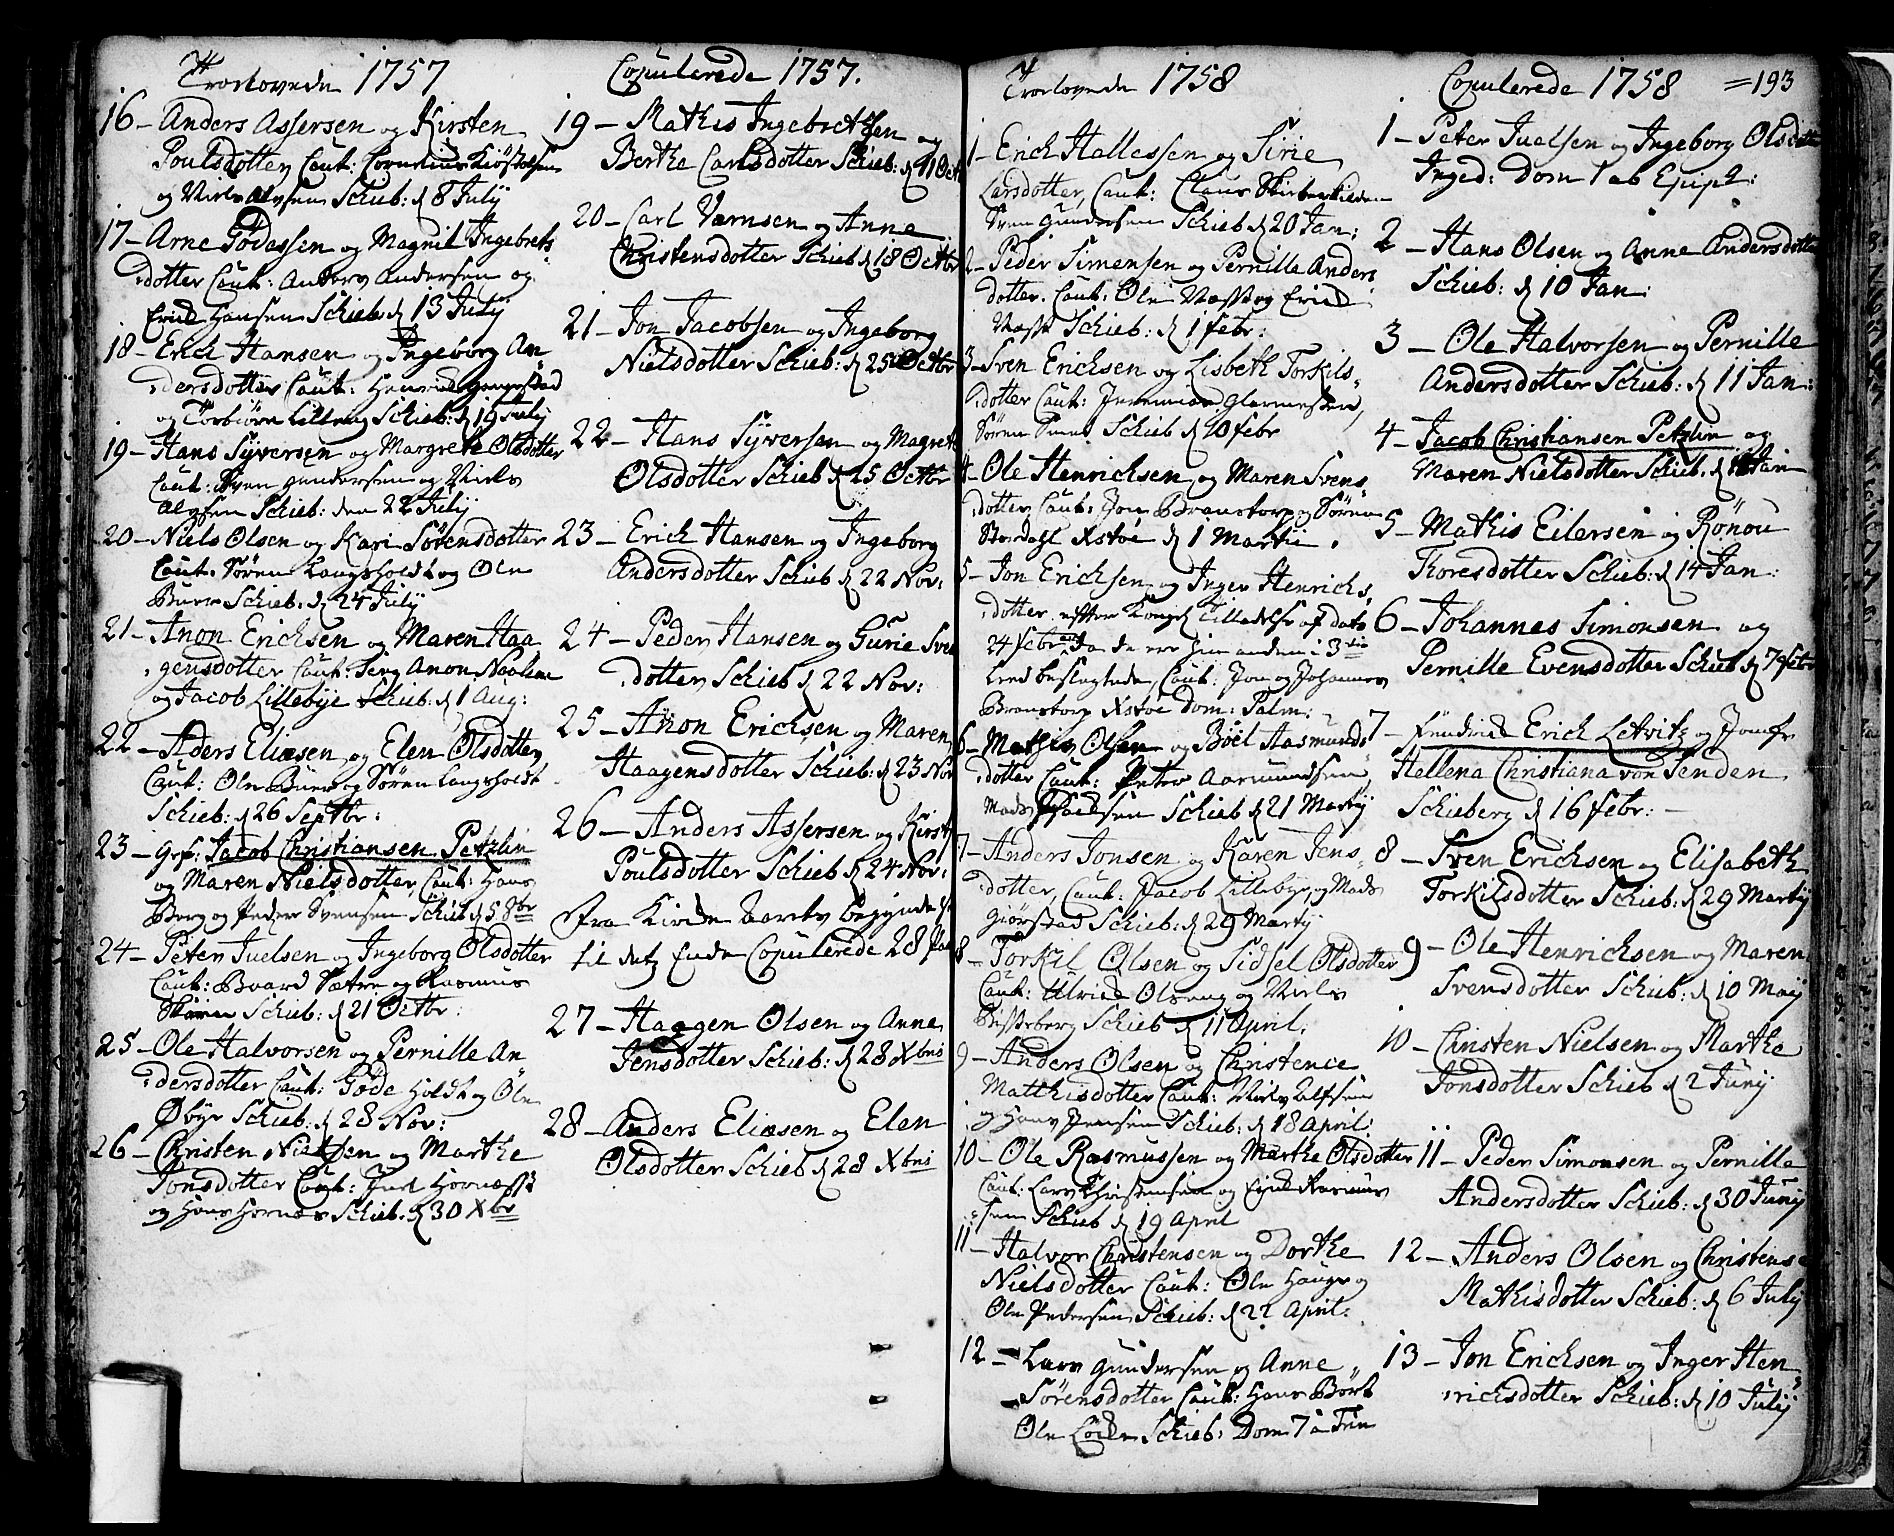 SAO, Skjeberg prestekontor Kirkebøker, F/Fa/L0002: Parish register (official) no. I 2, 1726-1791, p. 193